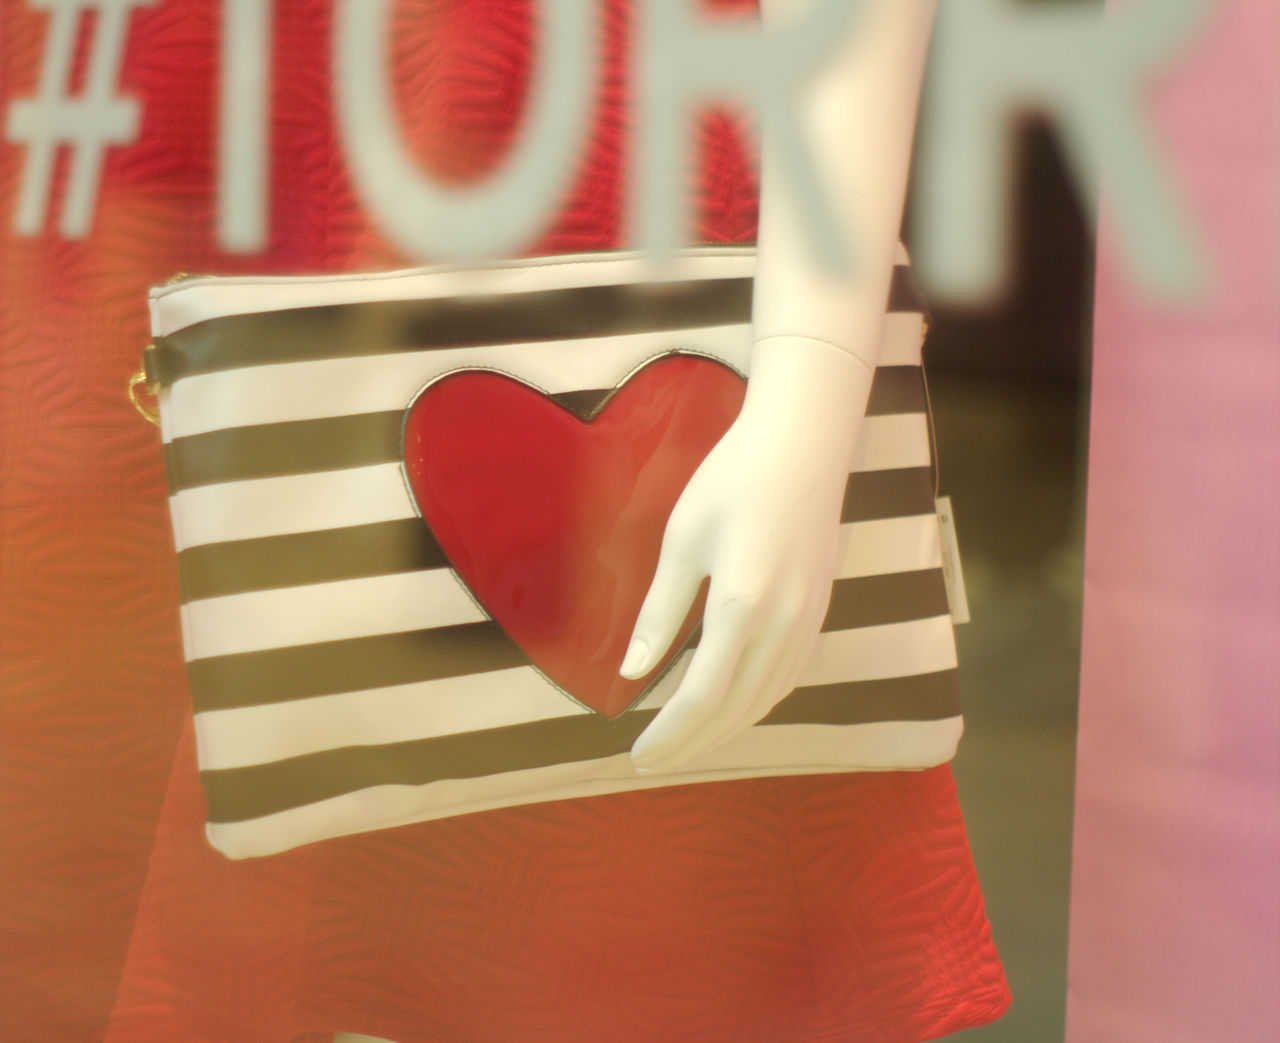 heart shape, striped, love, red, celebration, no people, indoors, candy cane, close-up, holiday - event, day